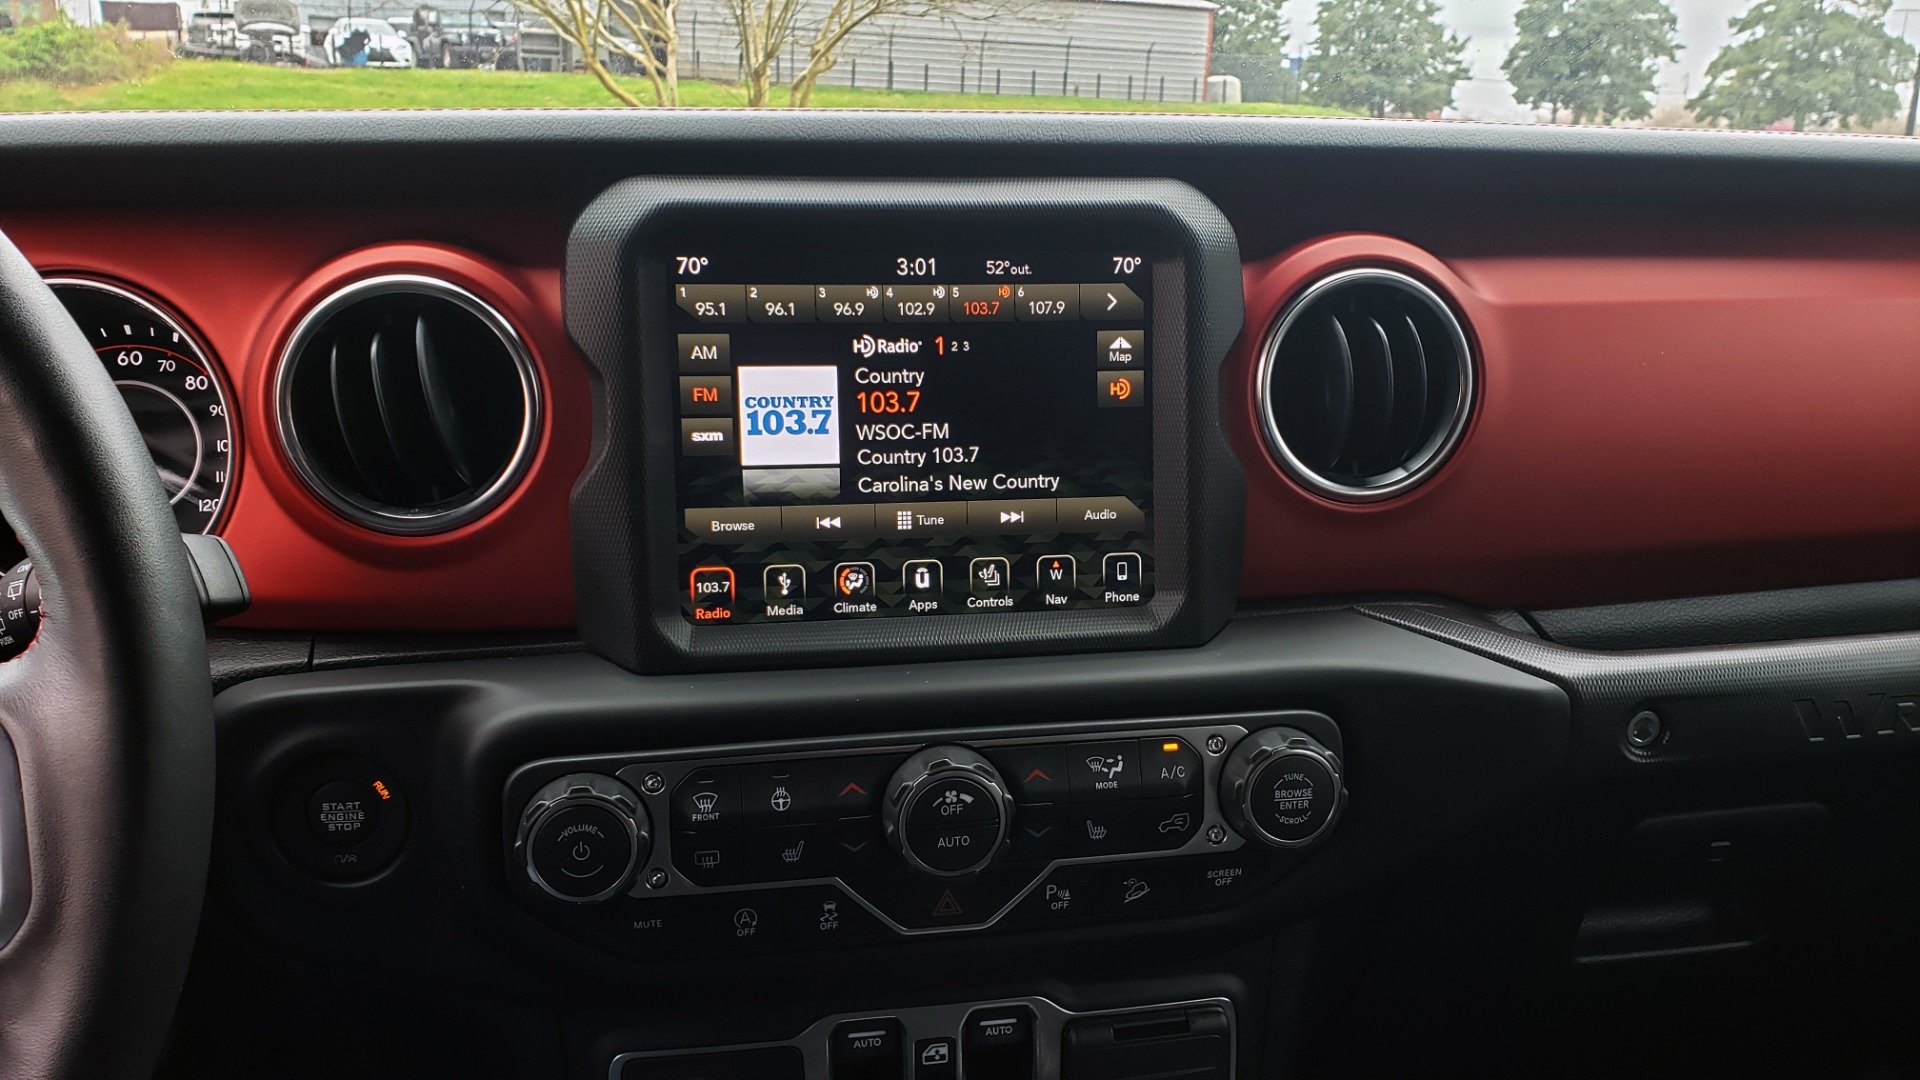 Used 2019 Jeep WRANGLER UNLIMITED RUBICON 4WD / V6 / 8-SPD AUTO / NAV / PWR TOP / REARVIEW for sale Sold at Formula Imports in Charlotte NC 28227 63